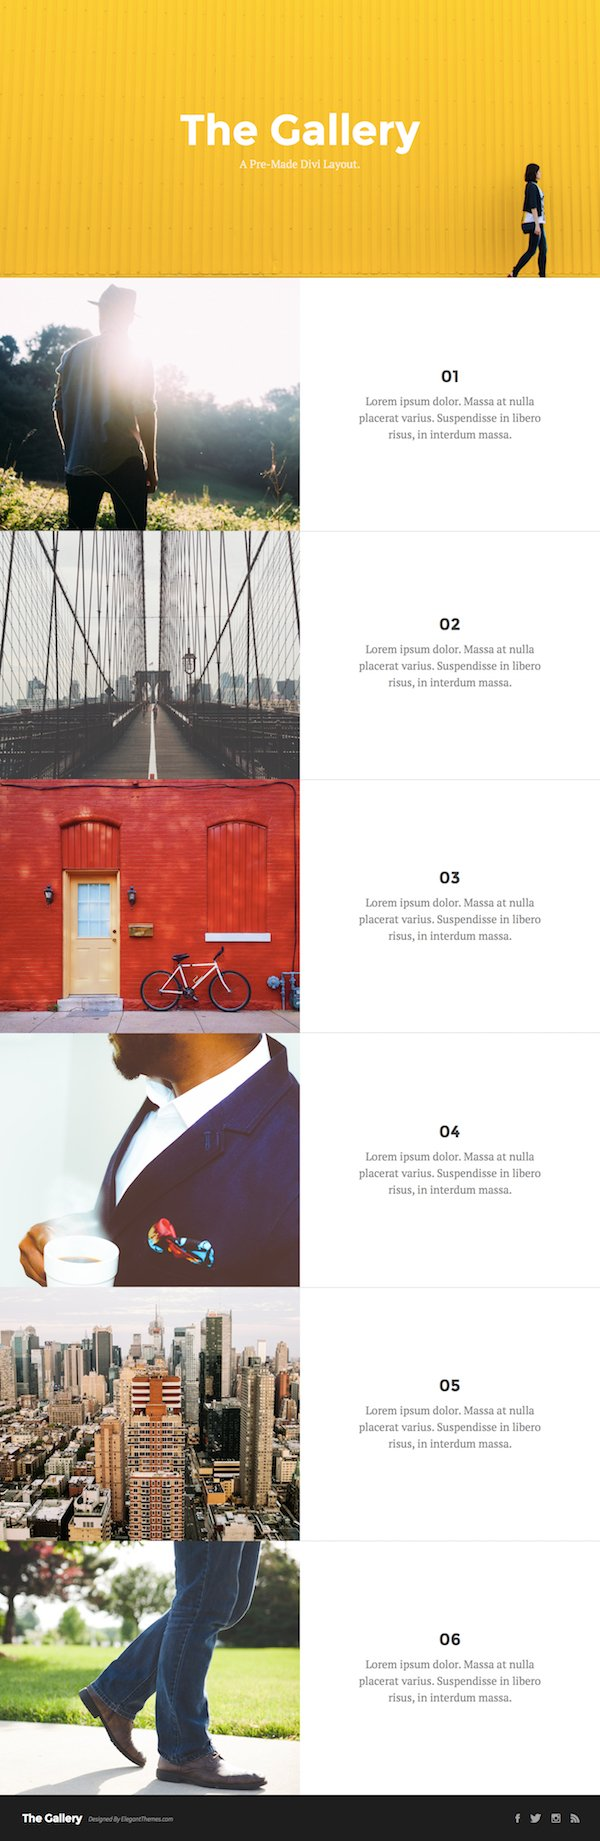 divi-gallery-page-layout-04-full